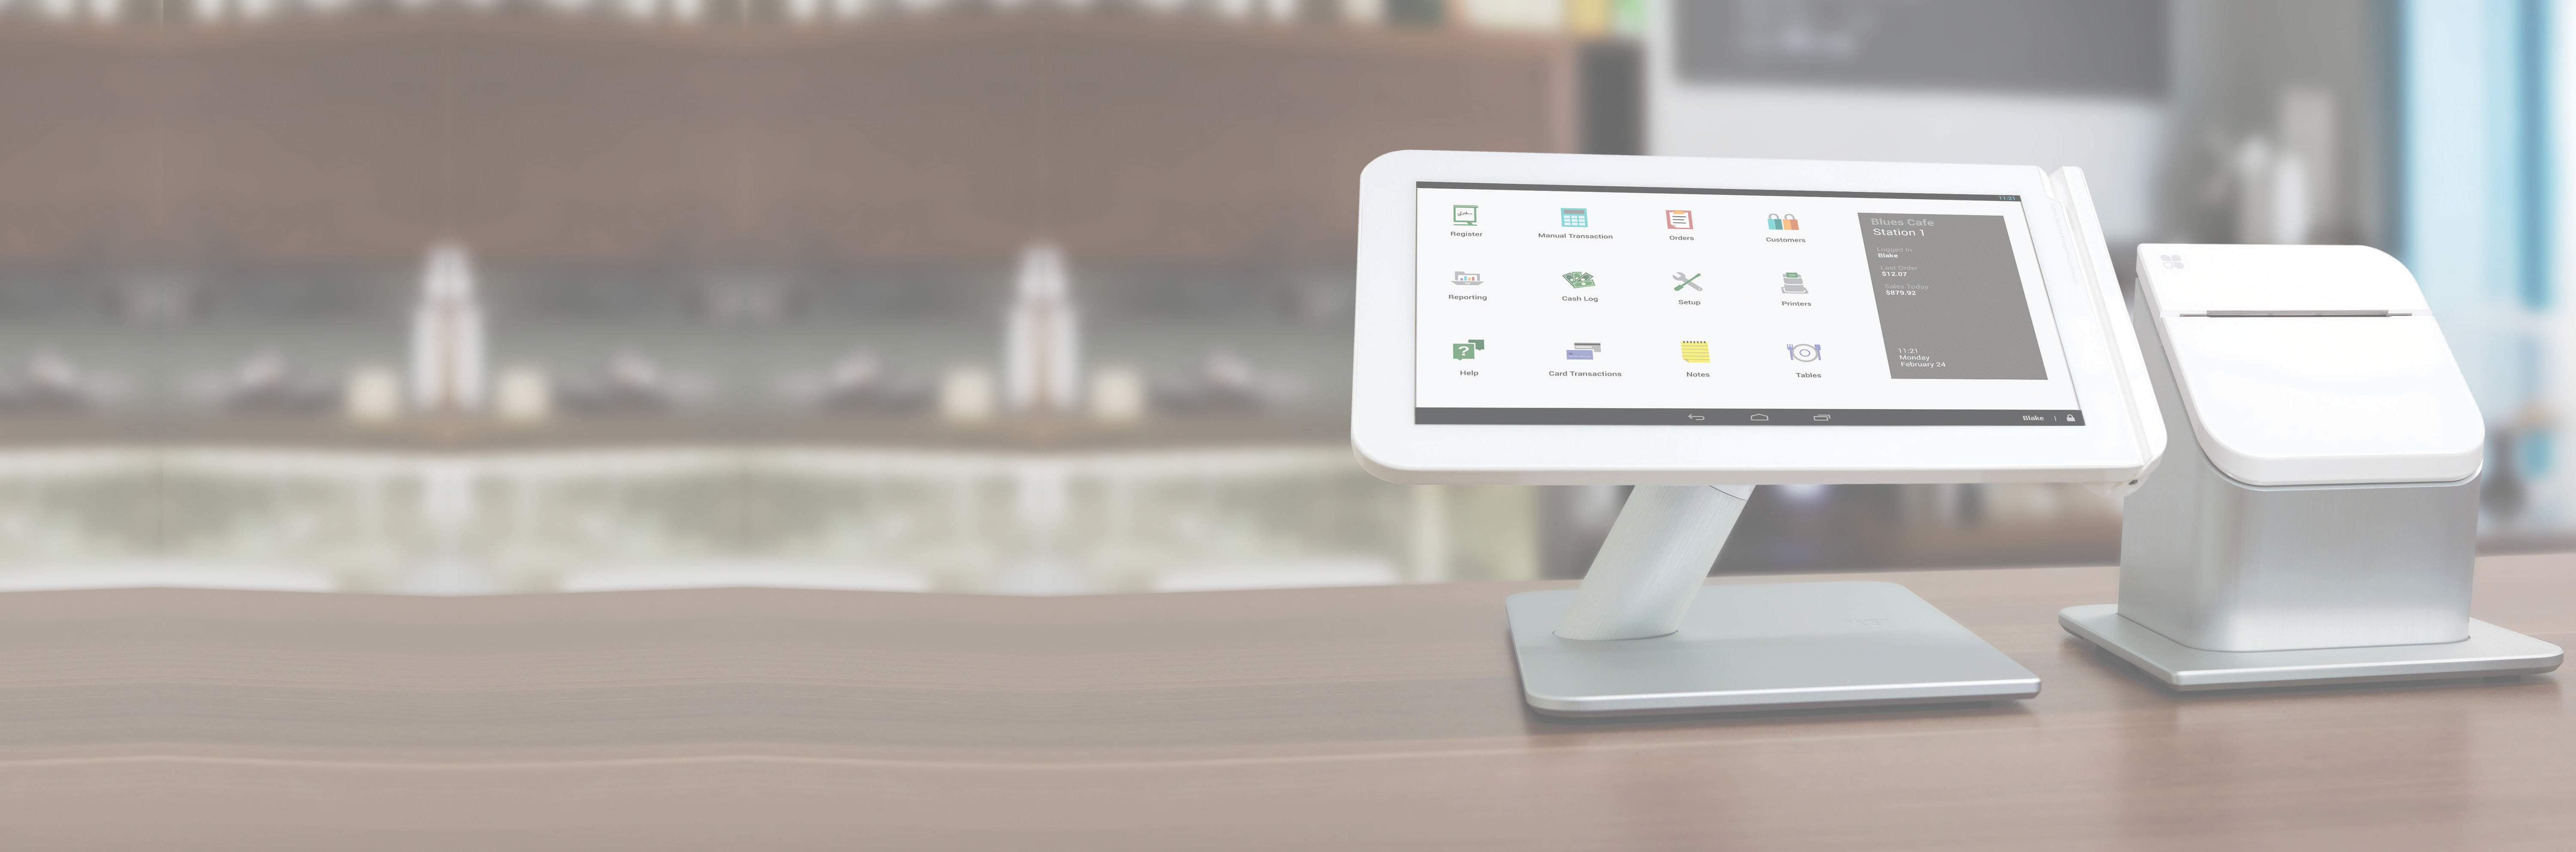 clover-pos-station-front-23